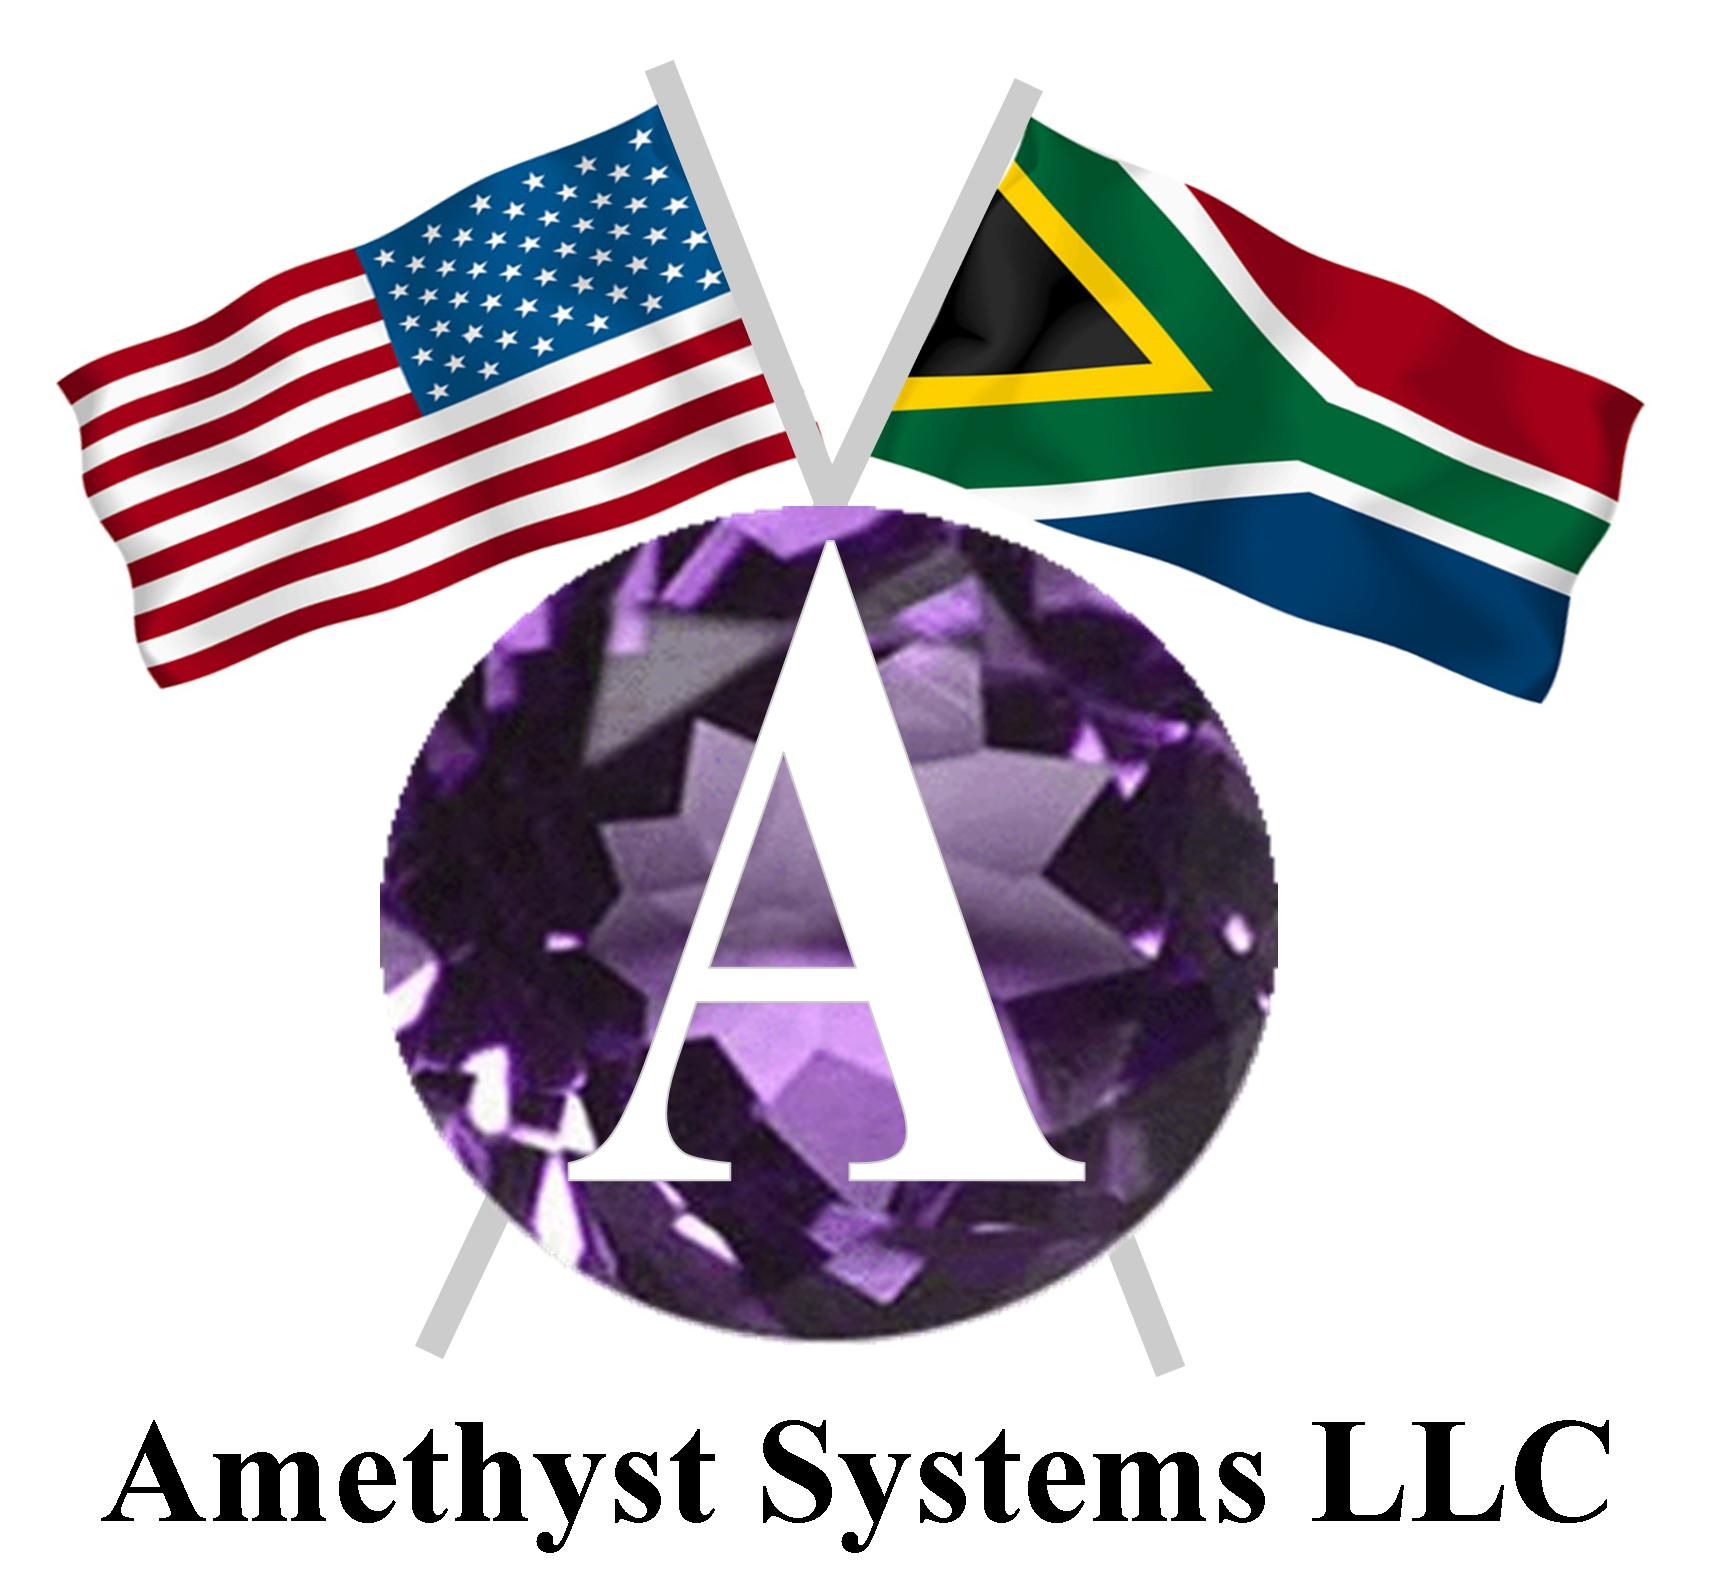 Amethyst Systems LLC